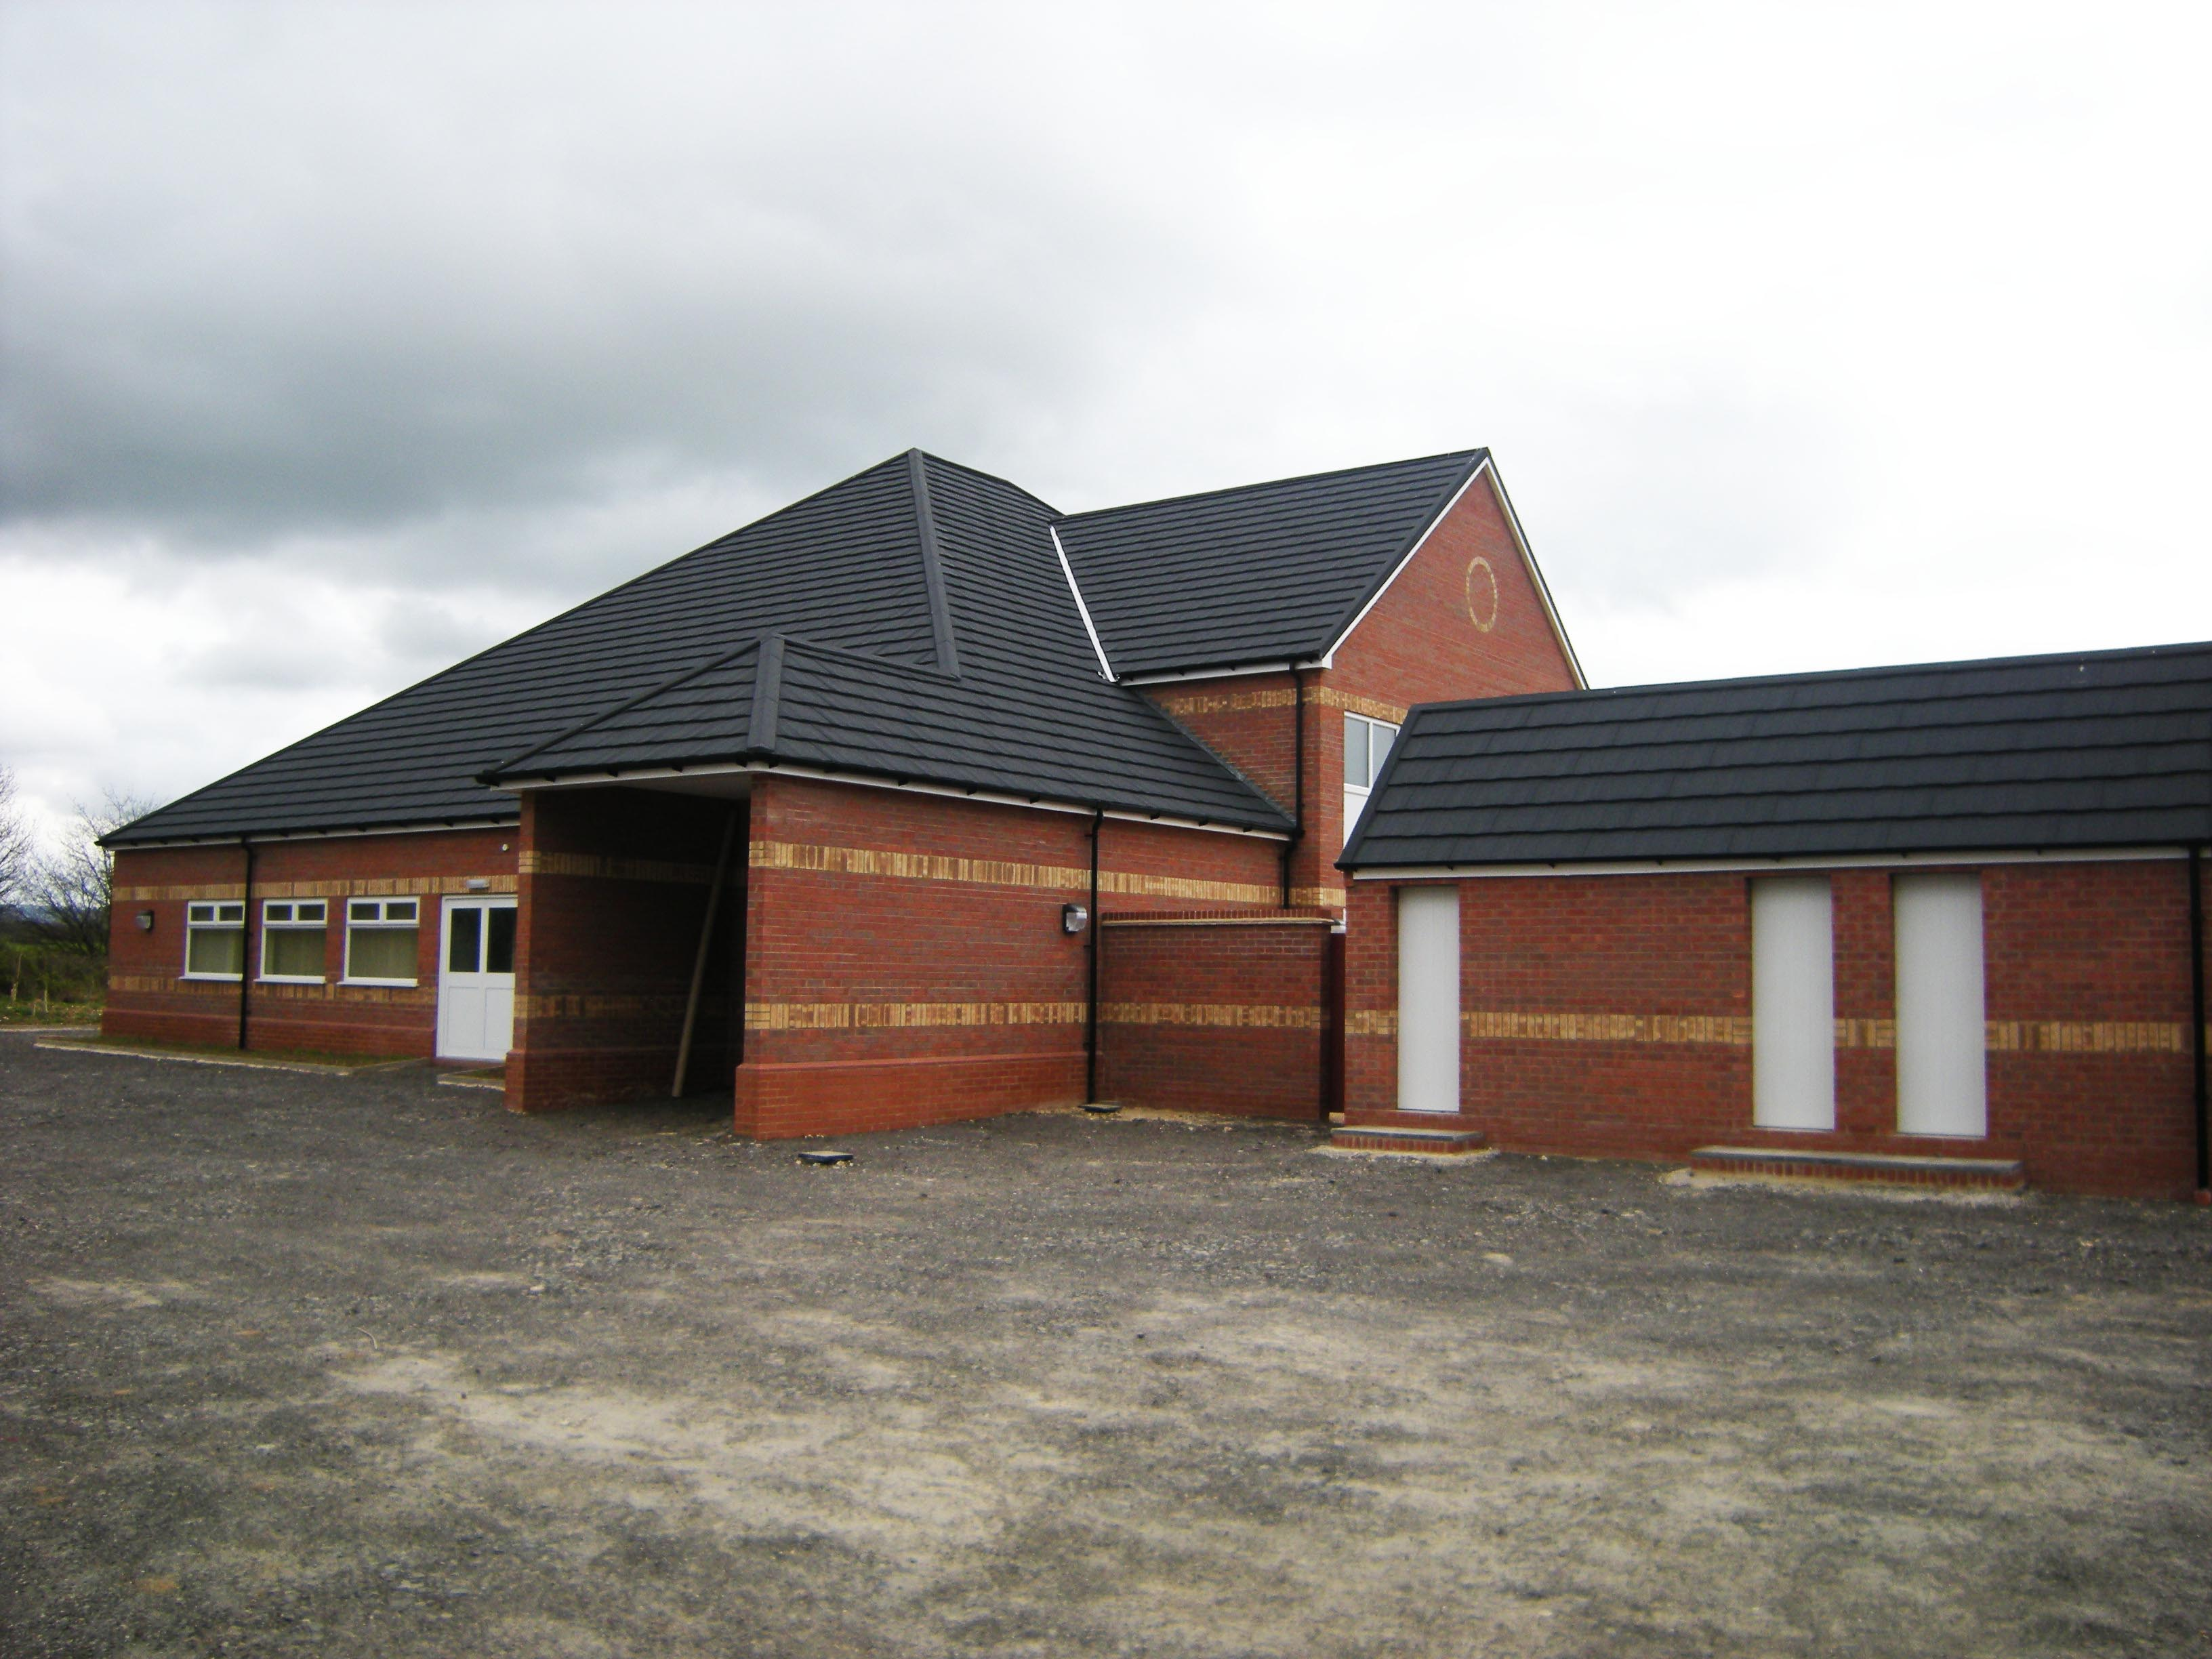 Evesham Football Club Clubhouse Metrotile Lightweight Roofing in Charcoal Slate